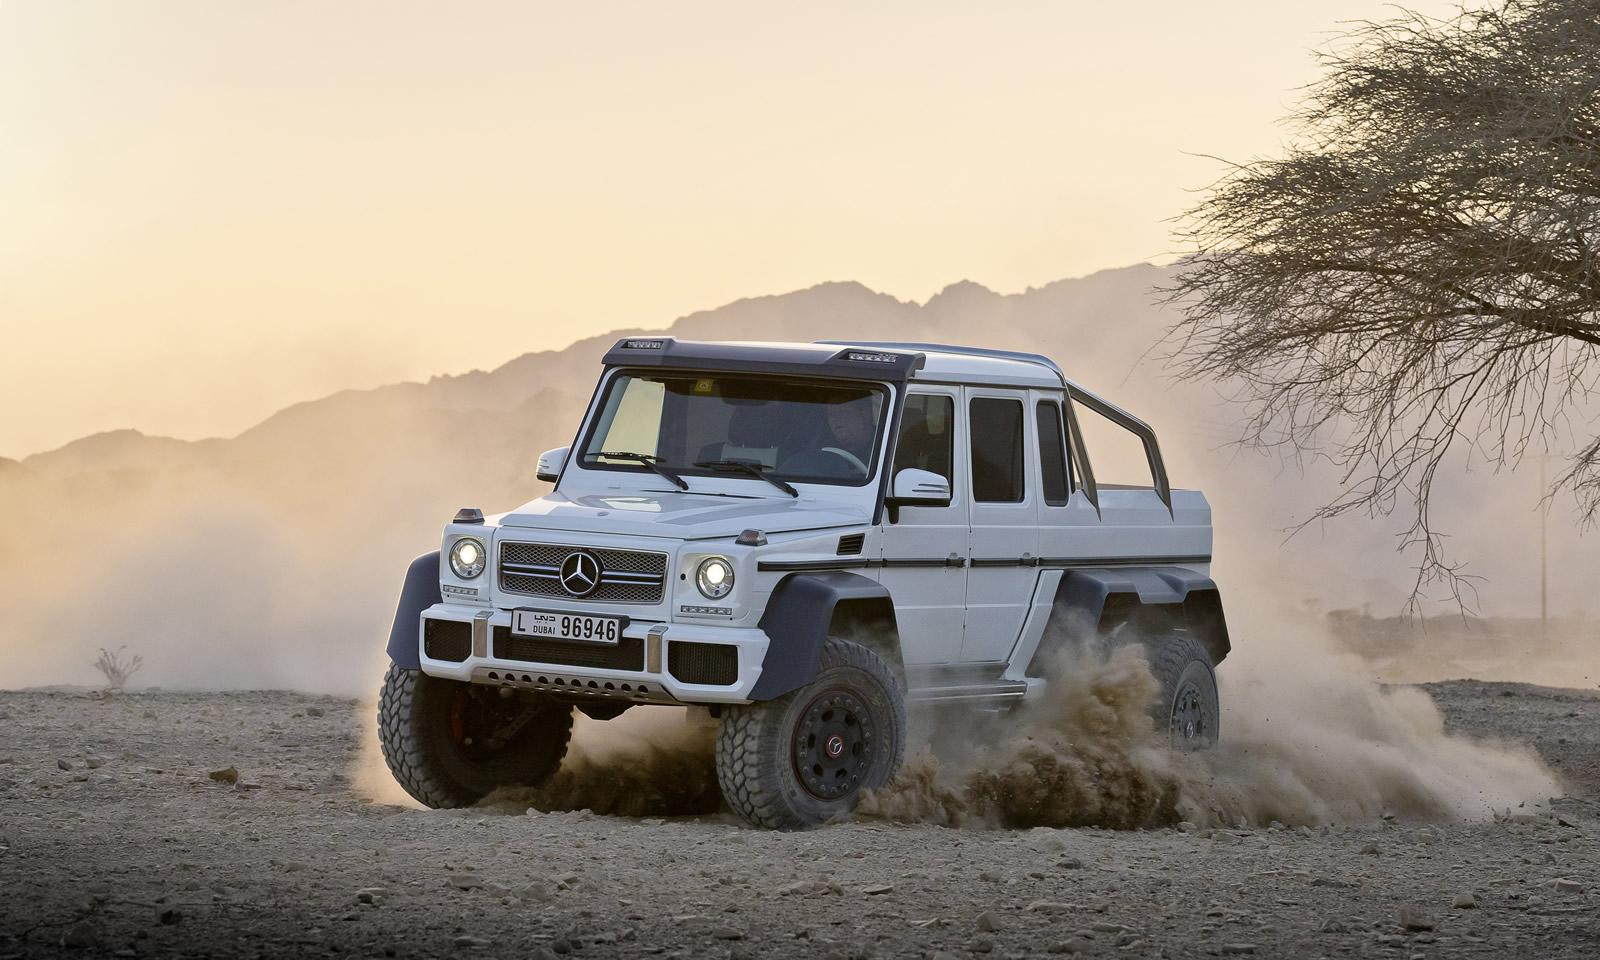 6x6 mercedes benz g63 amg pics aplenty autoevolution for Mercedes benz g63 6x6 for sale